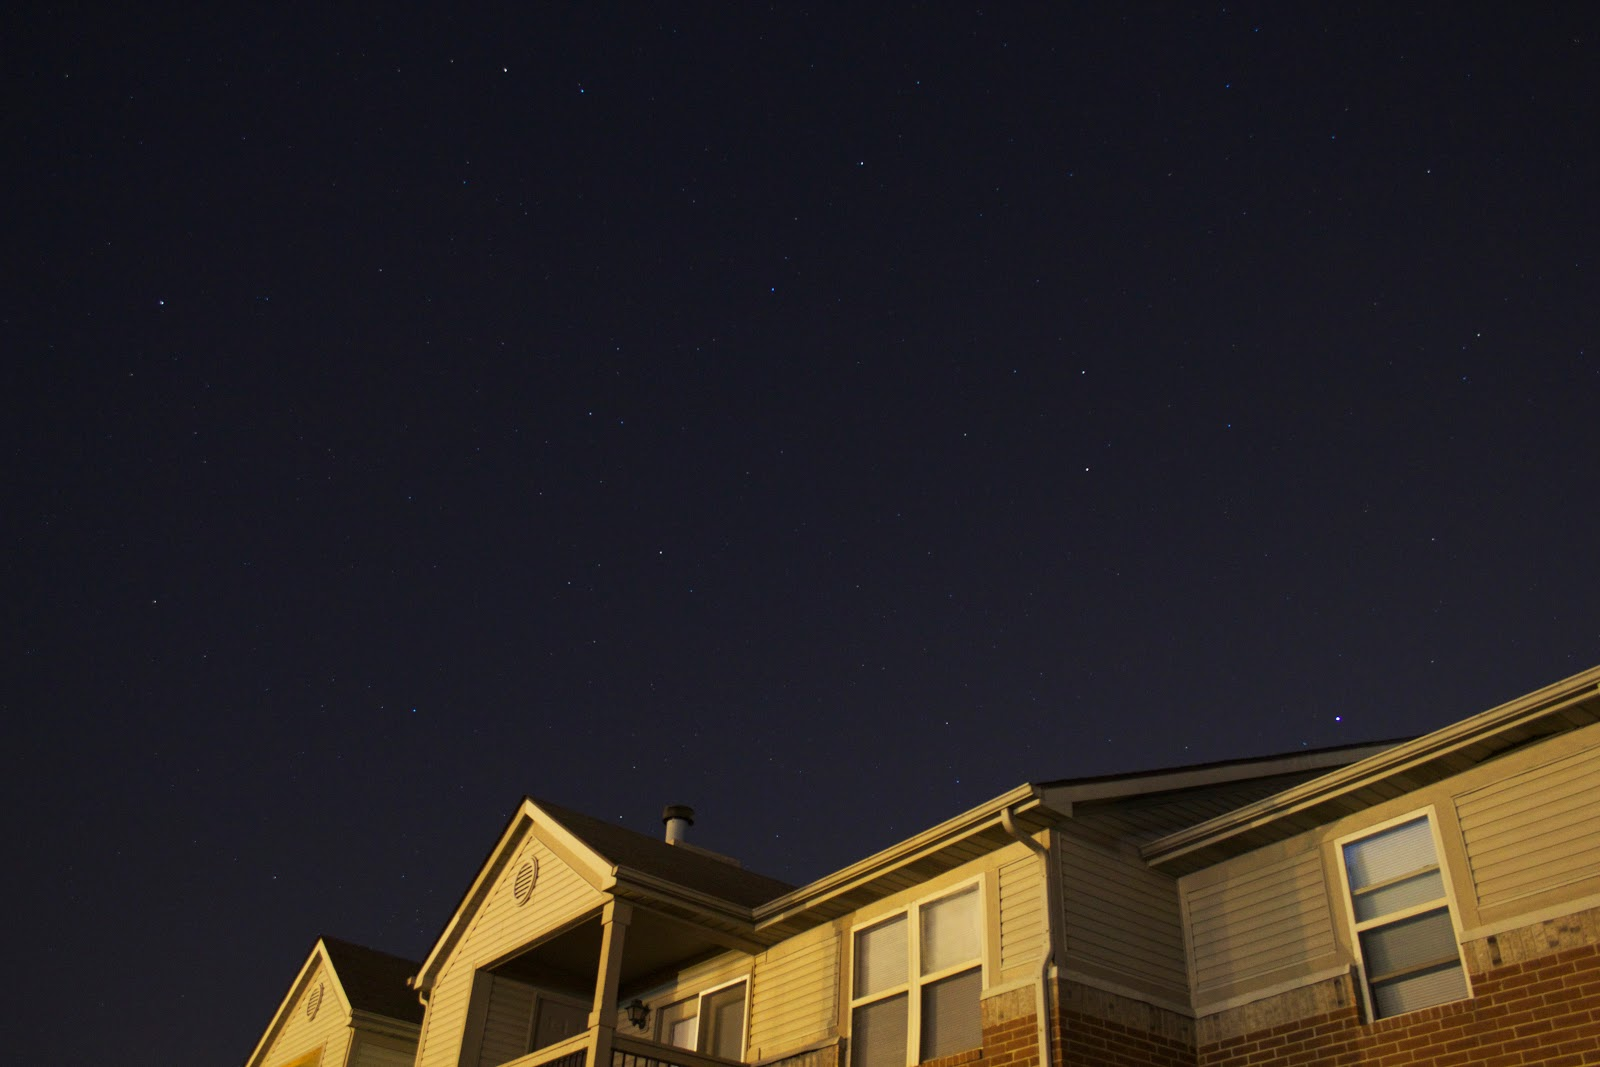 stars over roofline